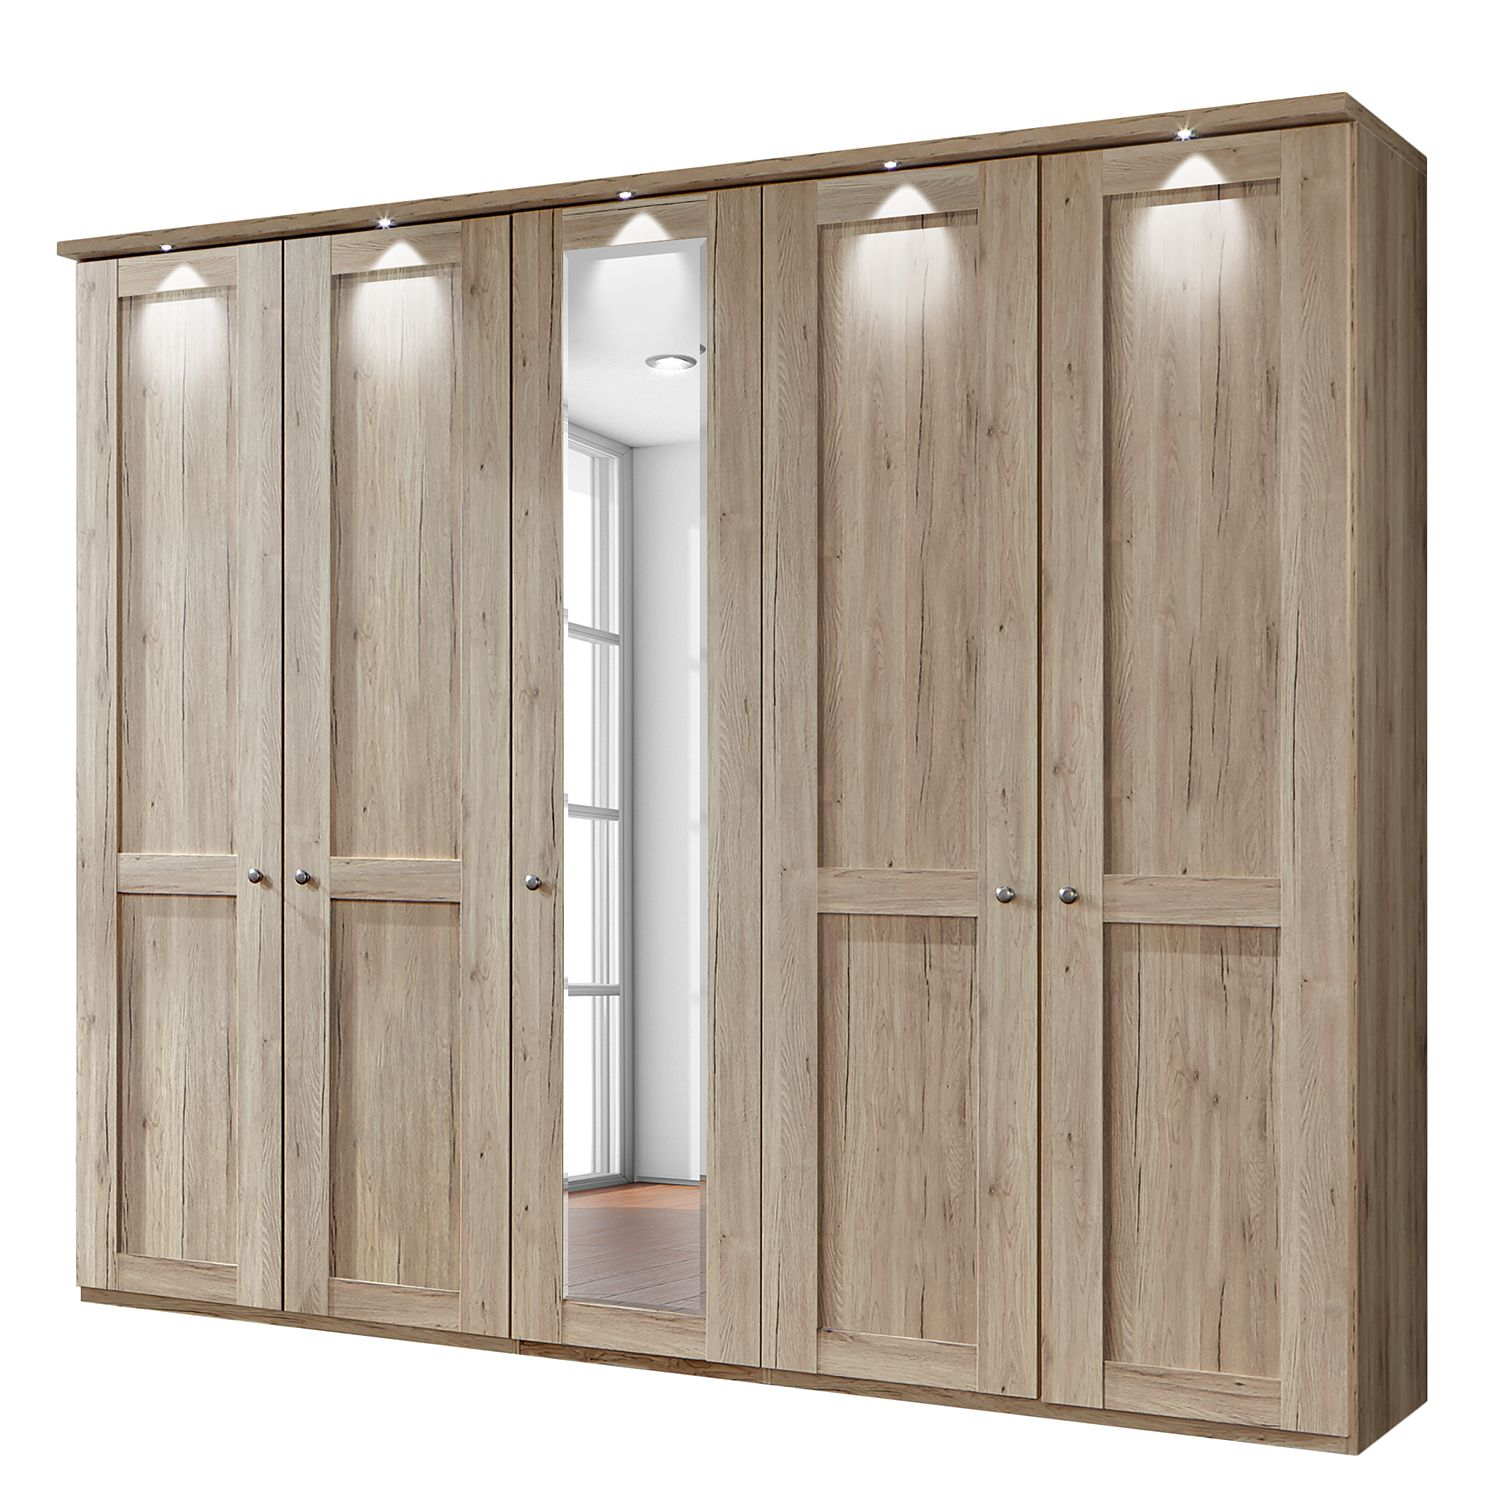 eek a armoire portes battantes bergamo eclairage led imitation. Black Bedroom Furniture Sets. Home Design Ideas